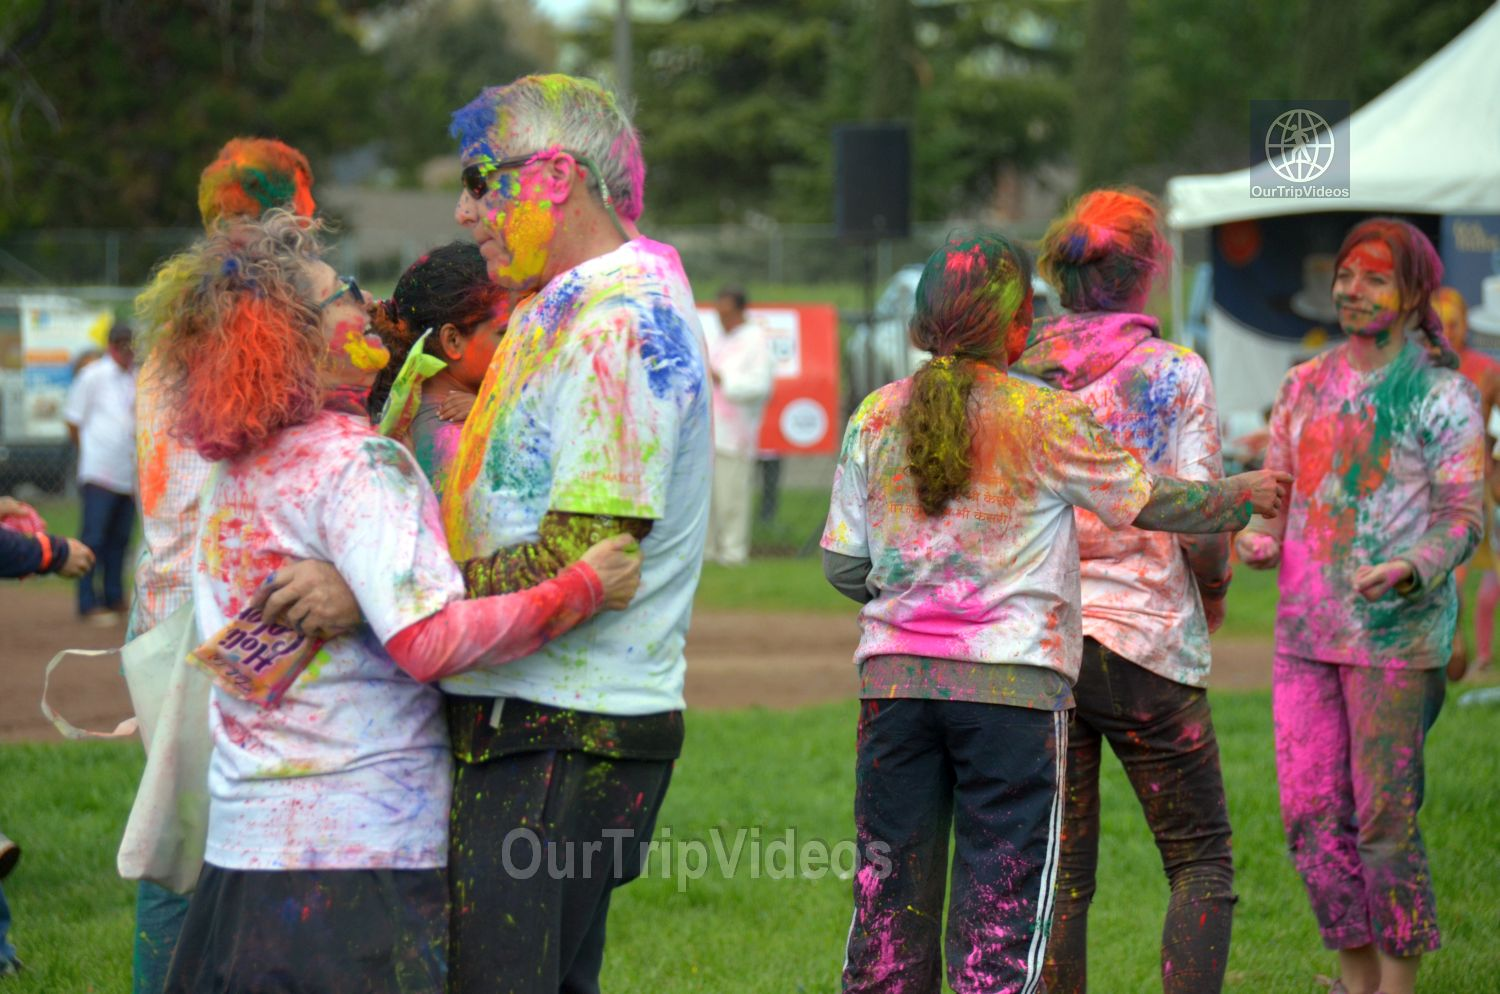 Festival of Colors - FOG and UPMA Holi, Fremont,CA, USA - Picture 10 of 25